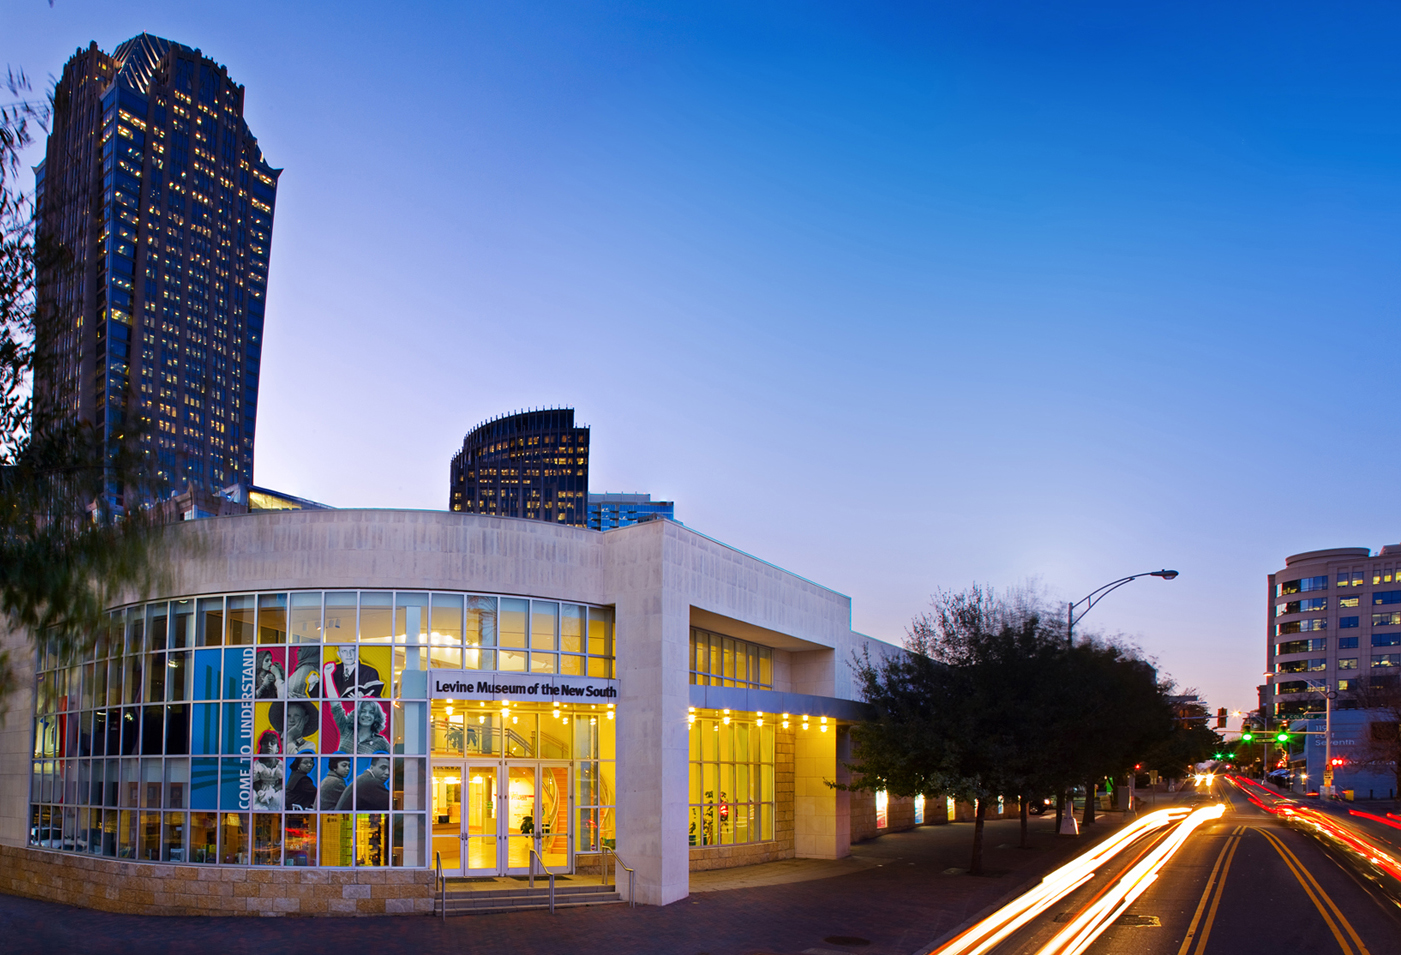 Levine Museum<a href=levine-museum-of-the-new-south>→</a><strong>Beautiful & educational event space</strong>